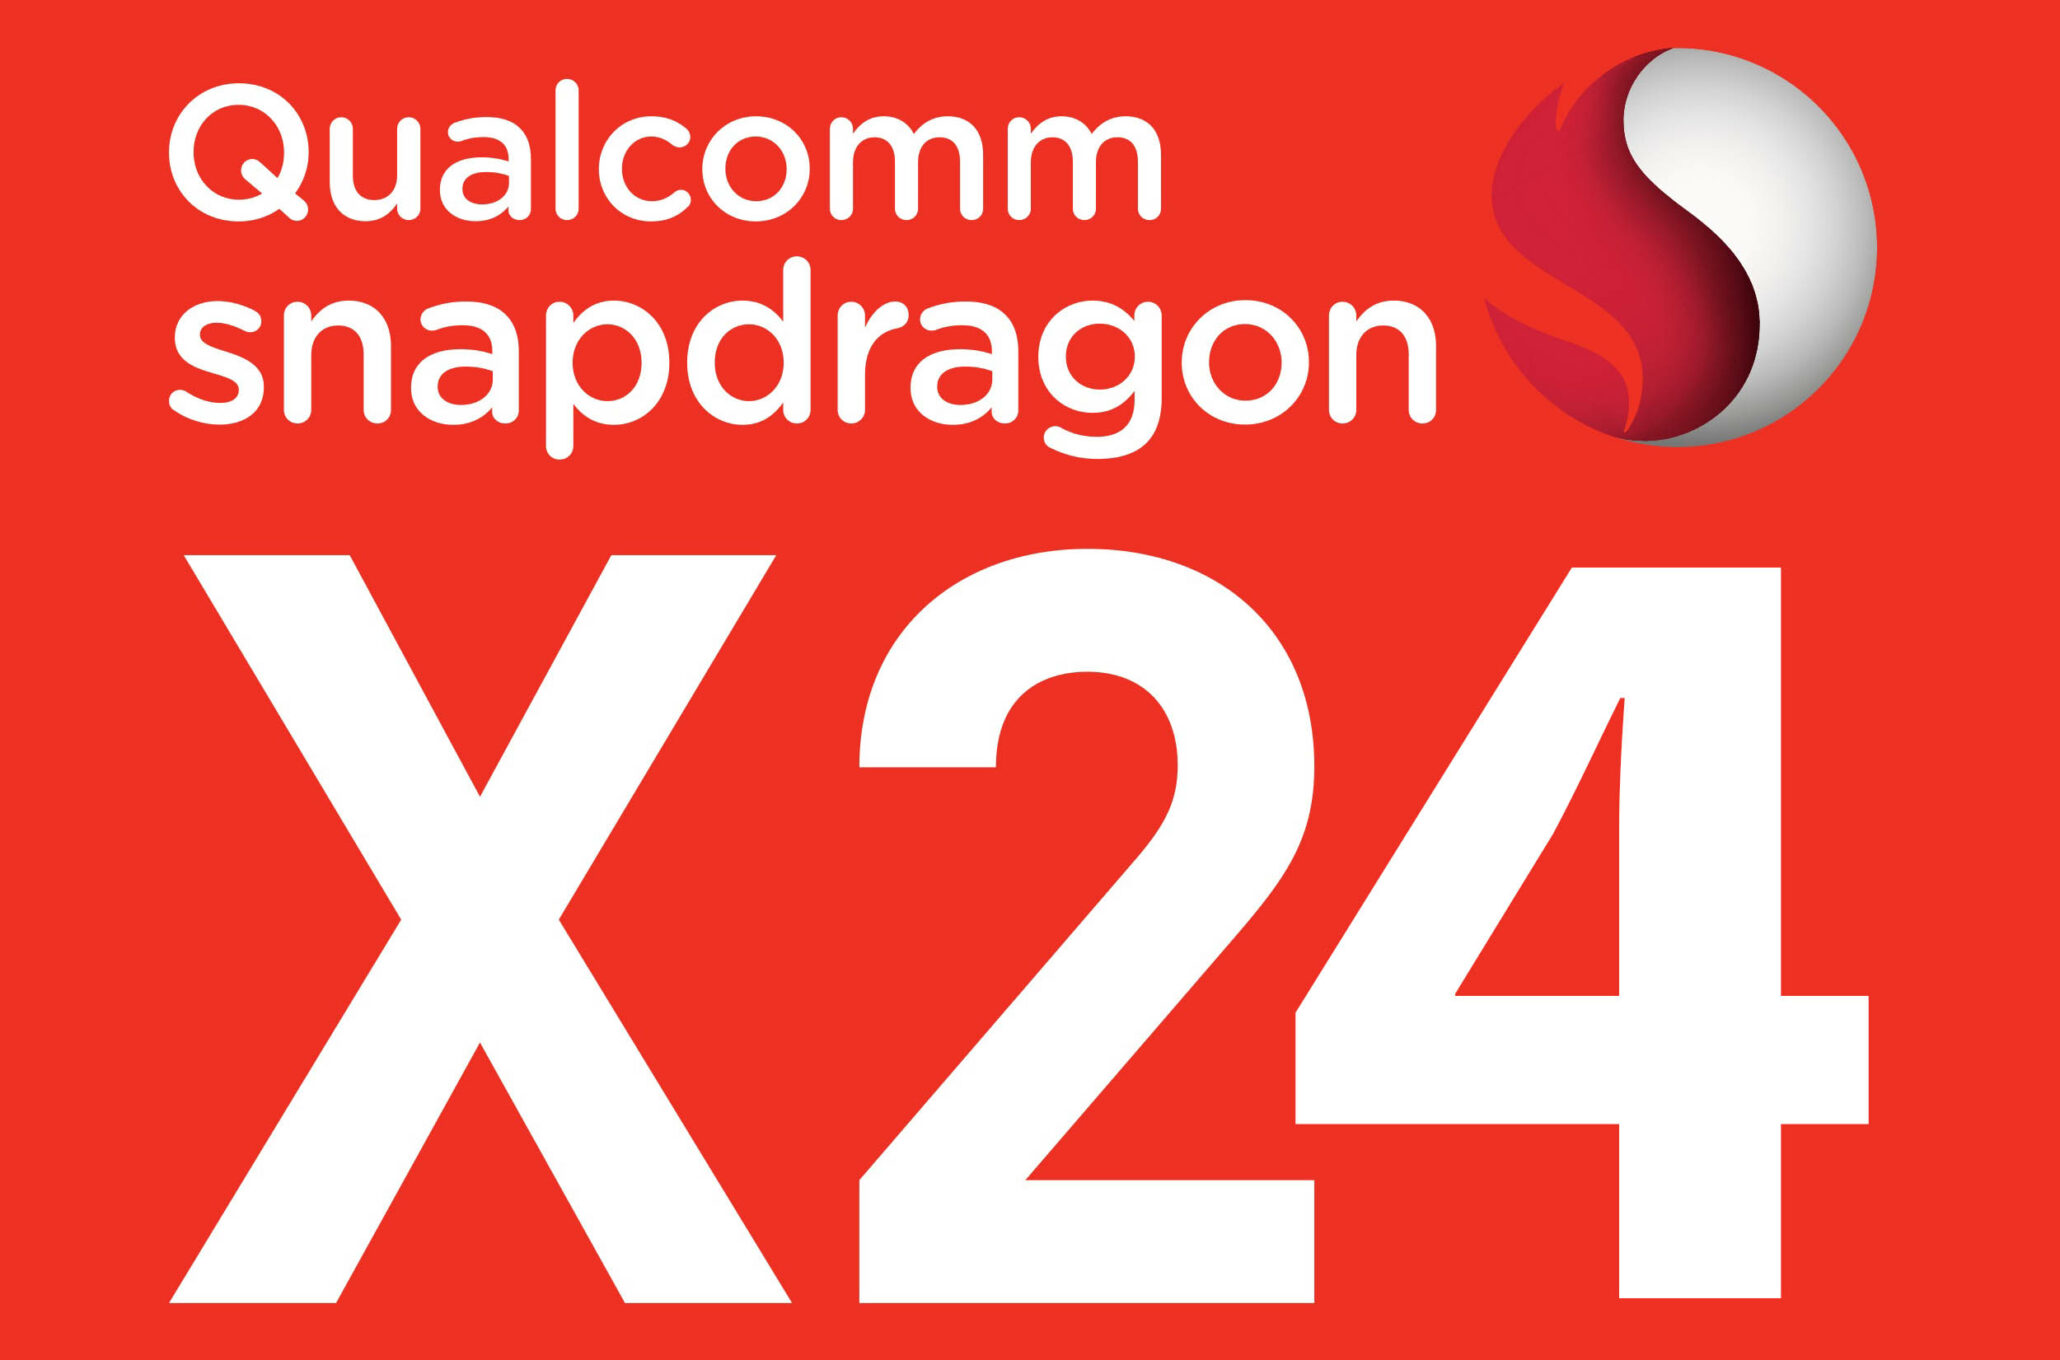 Qualcomm Snapdragon X24 Is the World's First LTE Modem to